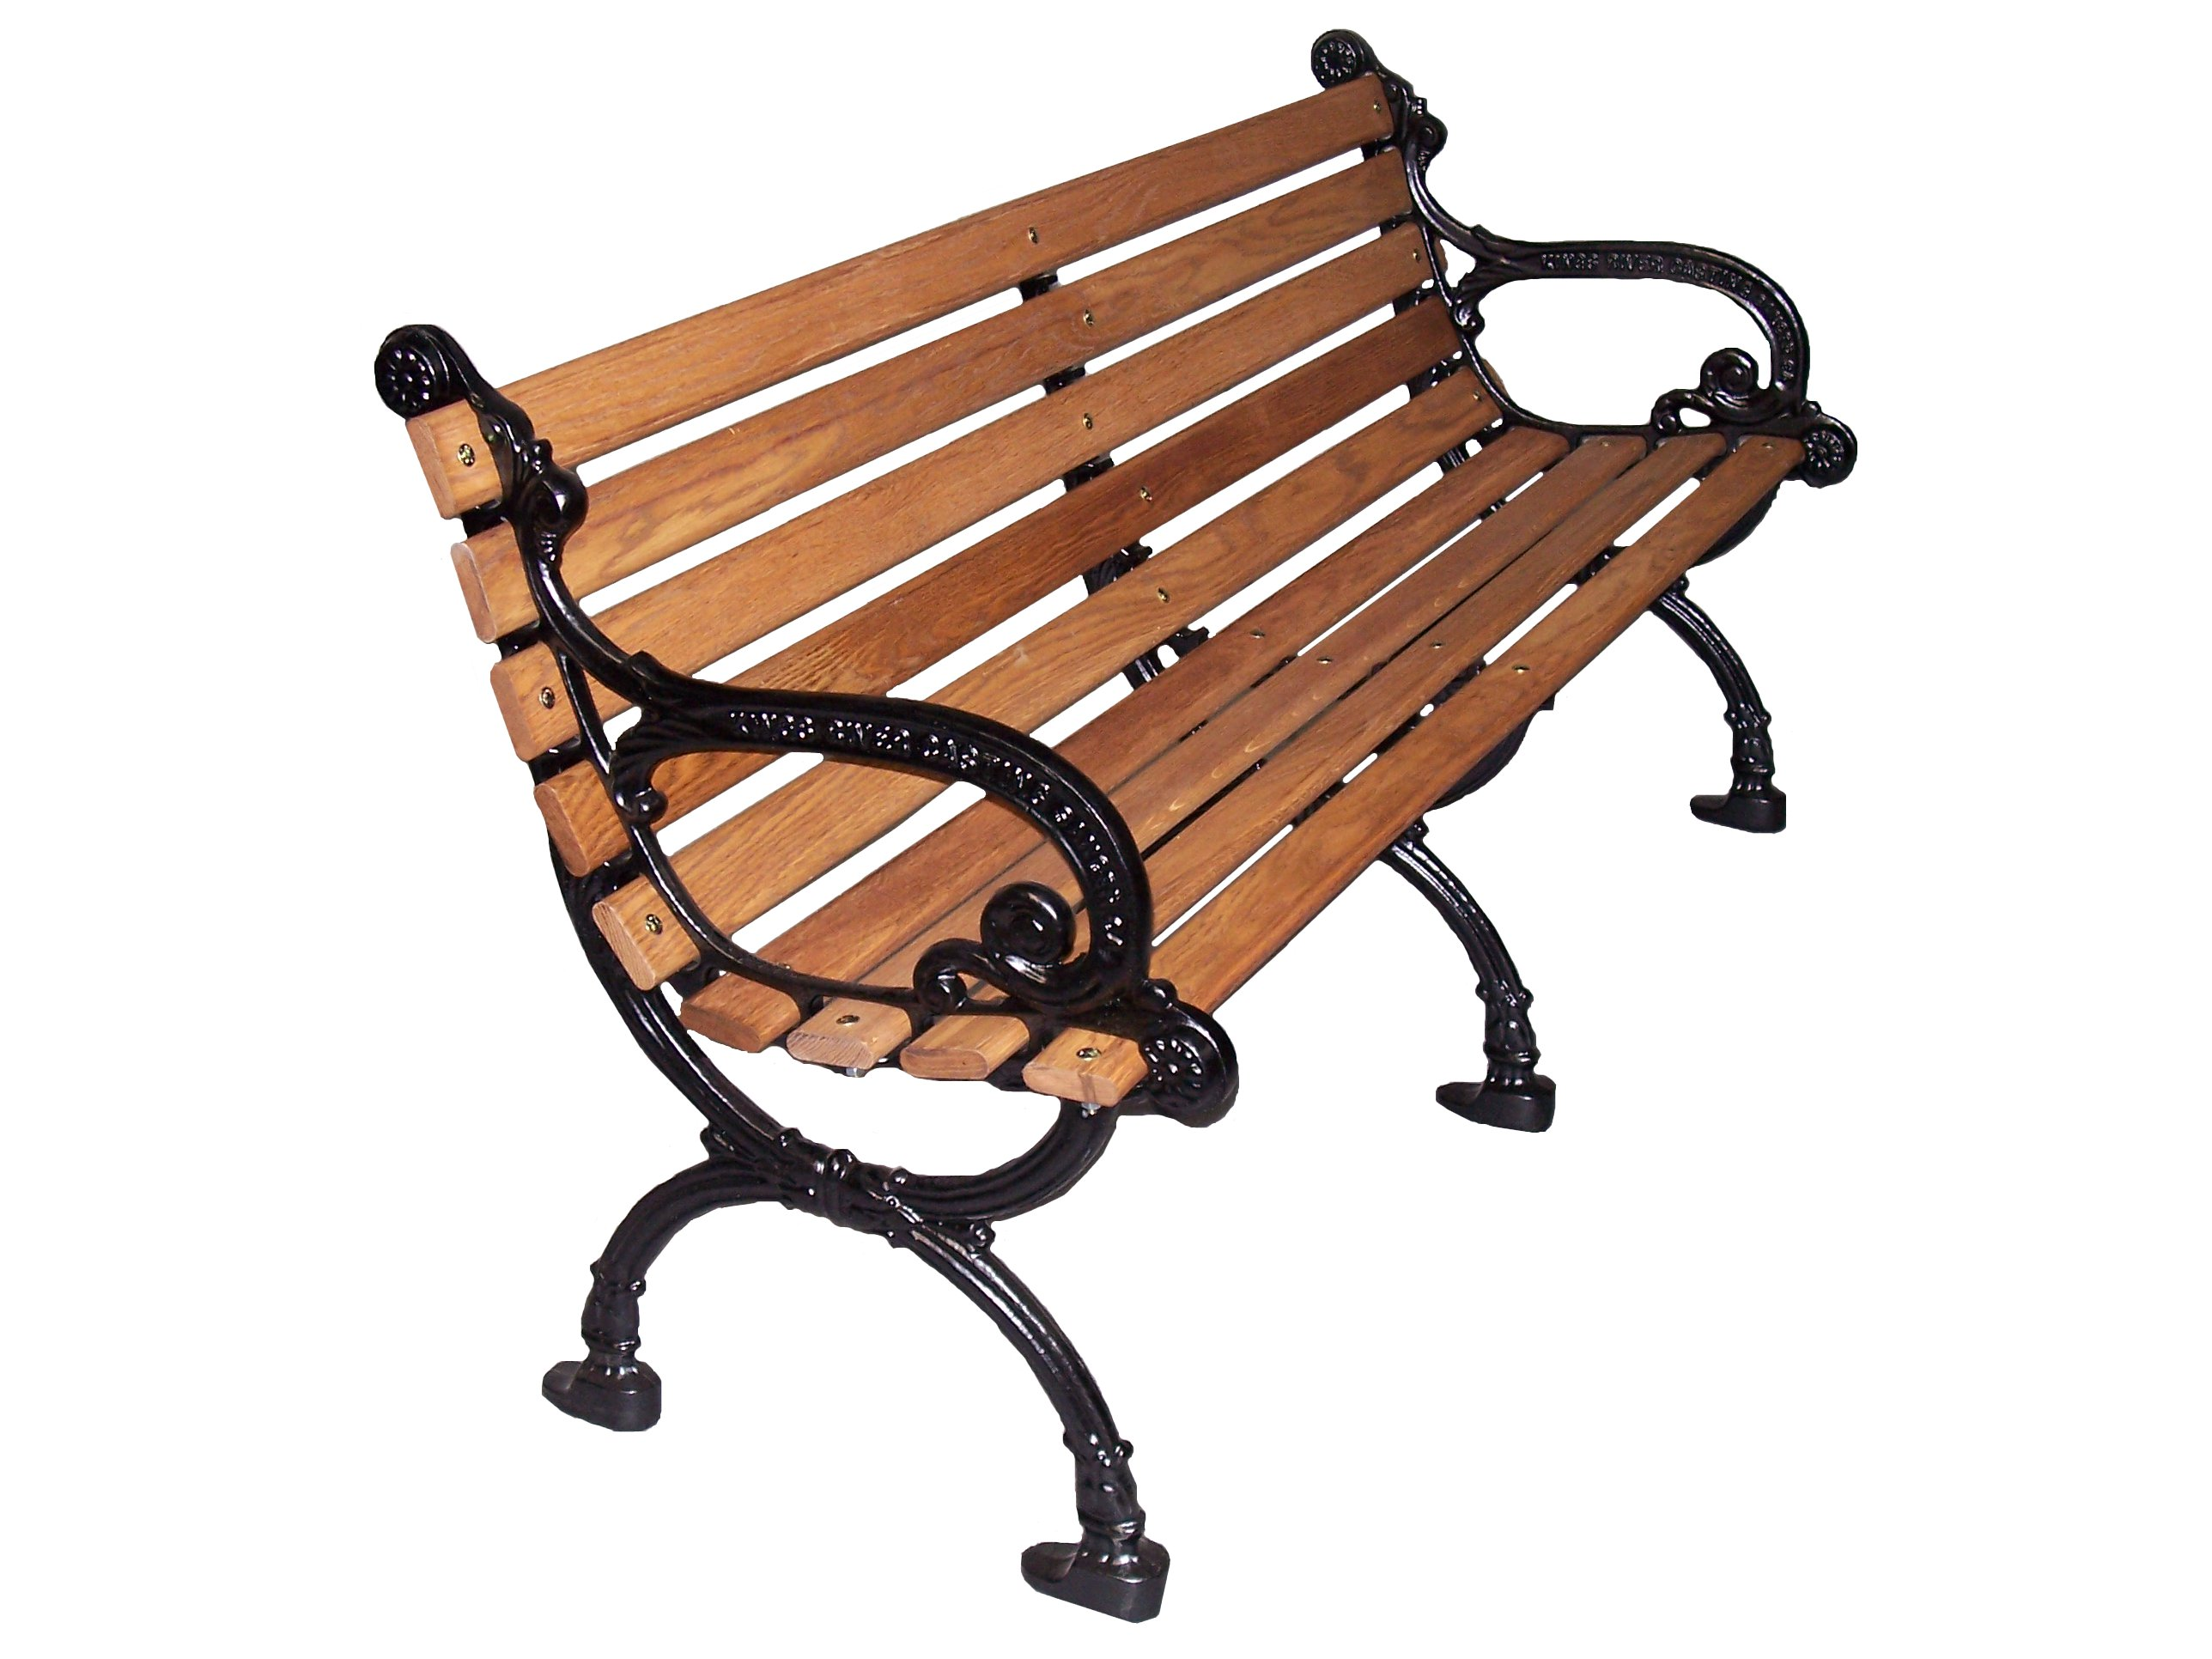 Wooden Park Benches Front Wooden Benches Wooden Park Benches Outdoor Wooden Benches